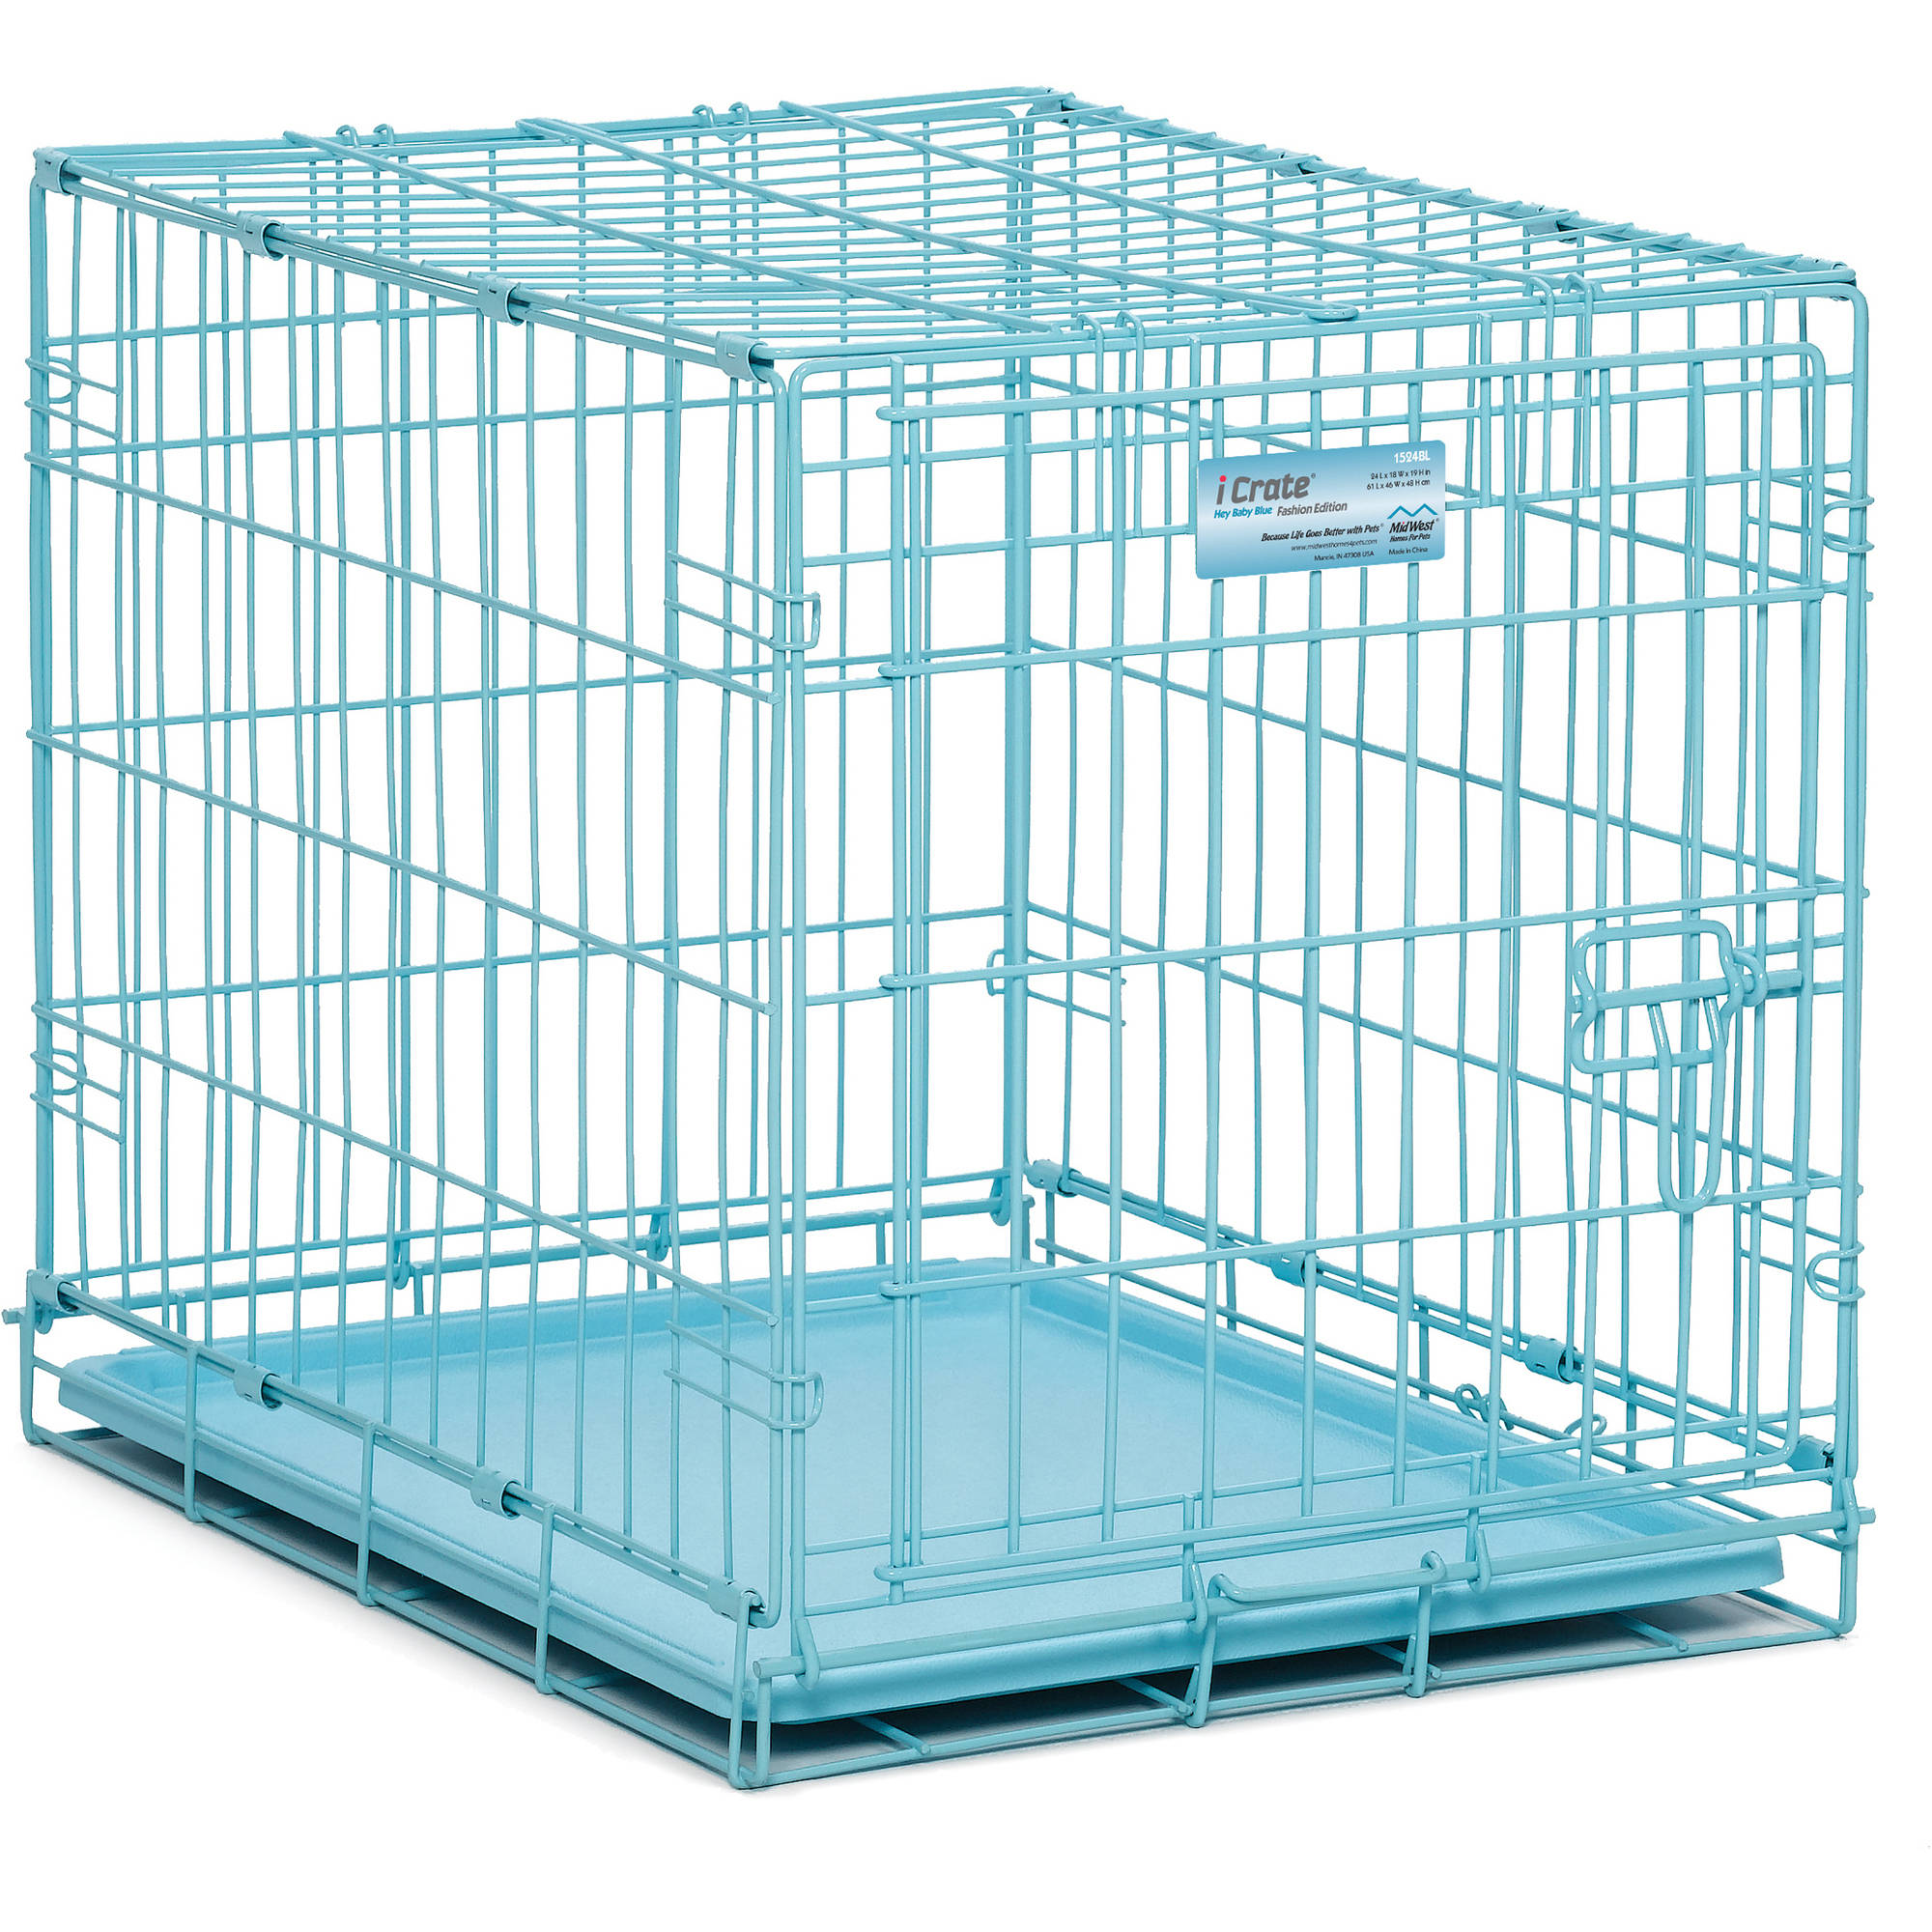 SmithBuilt Heavy Duty Dog Cage Crate Kennel - Multiple Colors Available - Walmart.com  sc 1 st  Walmart & SmithBuilt Heavy Duty Dog Cage Crate Kennel - Multiple Colors ...